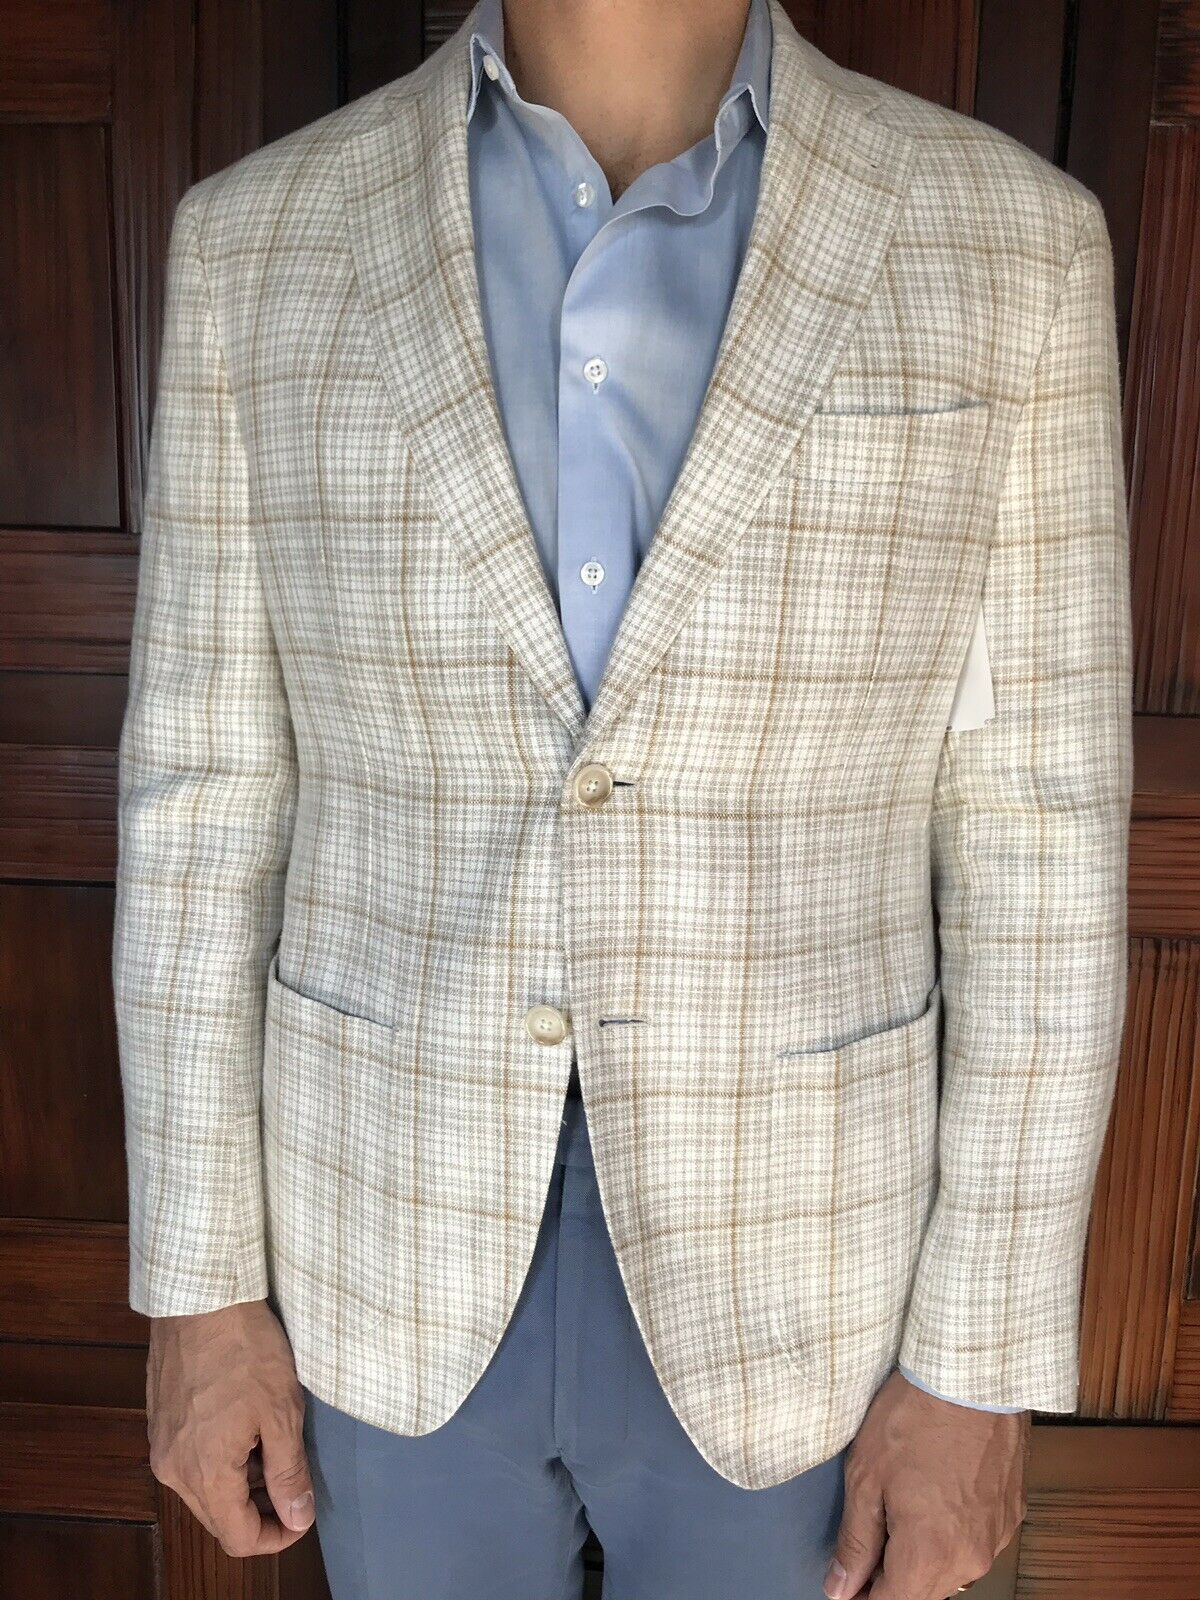 JKT Men's Plaid Linen Blazer Size 40S New